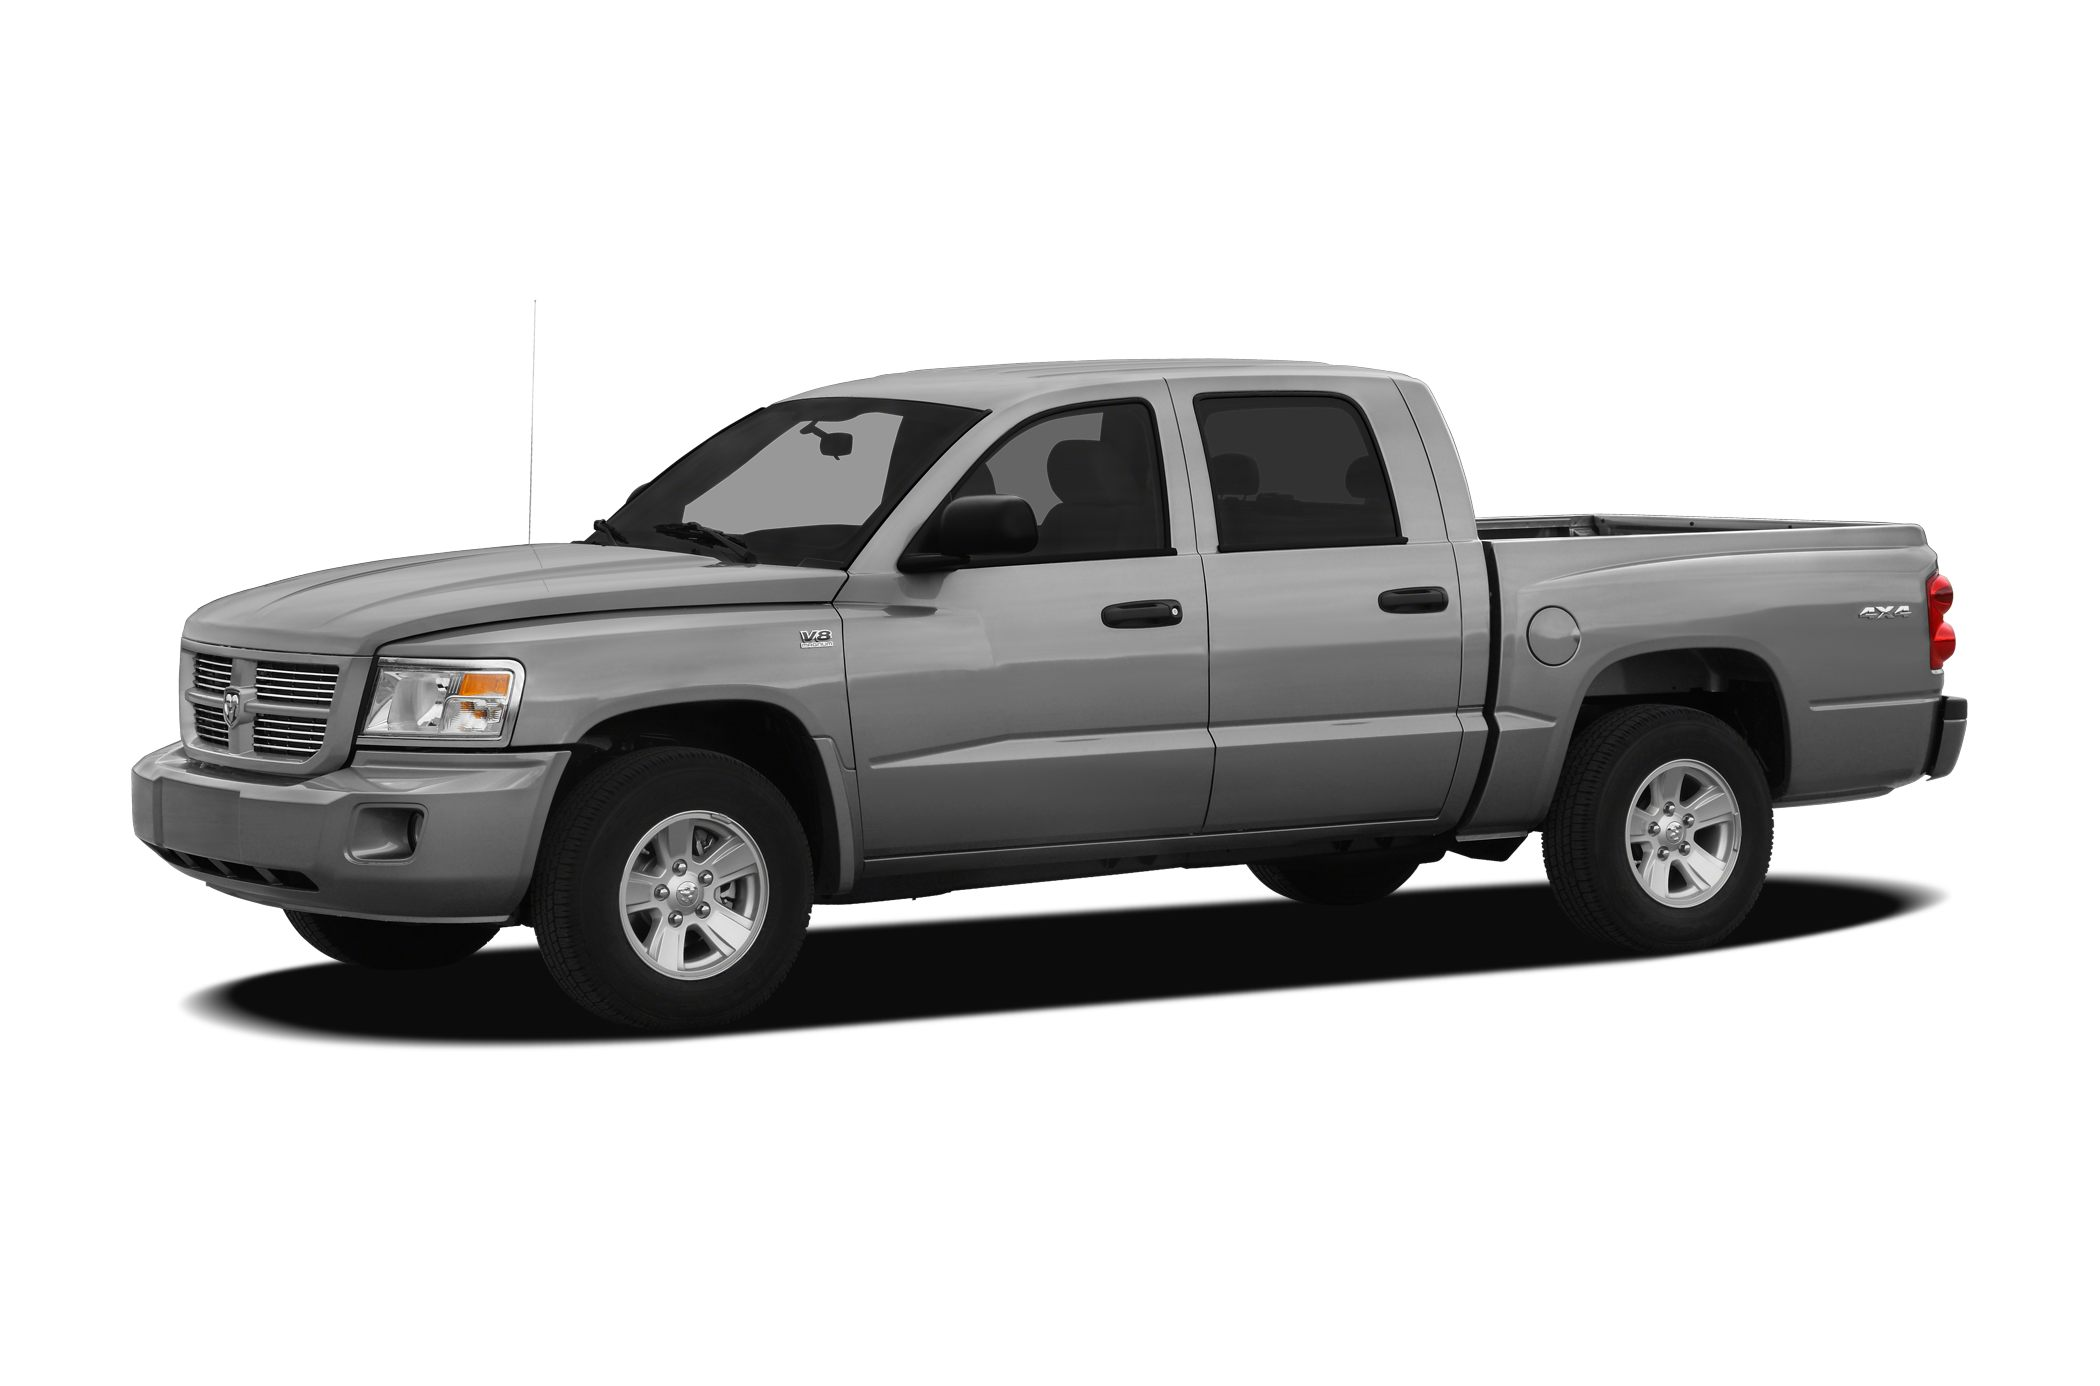 2009 Dodge Dakota Big Horn/Lone Star Extended Cab Pickup for sale in Strongsville for $18,716 with 35,287 miles